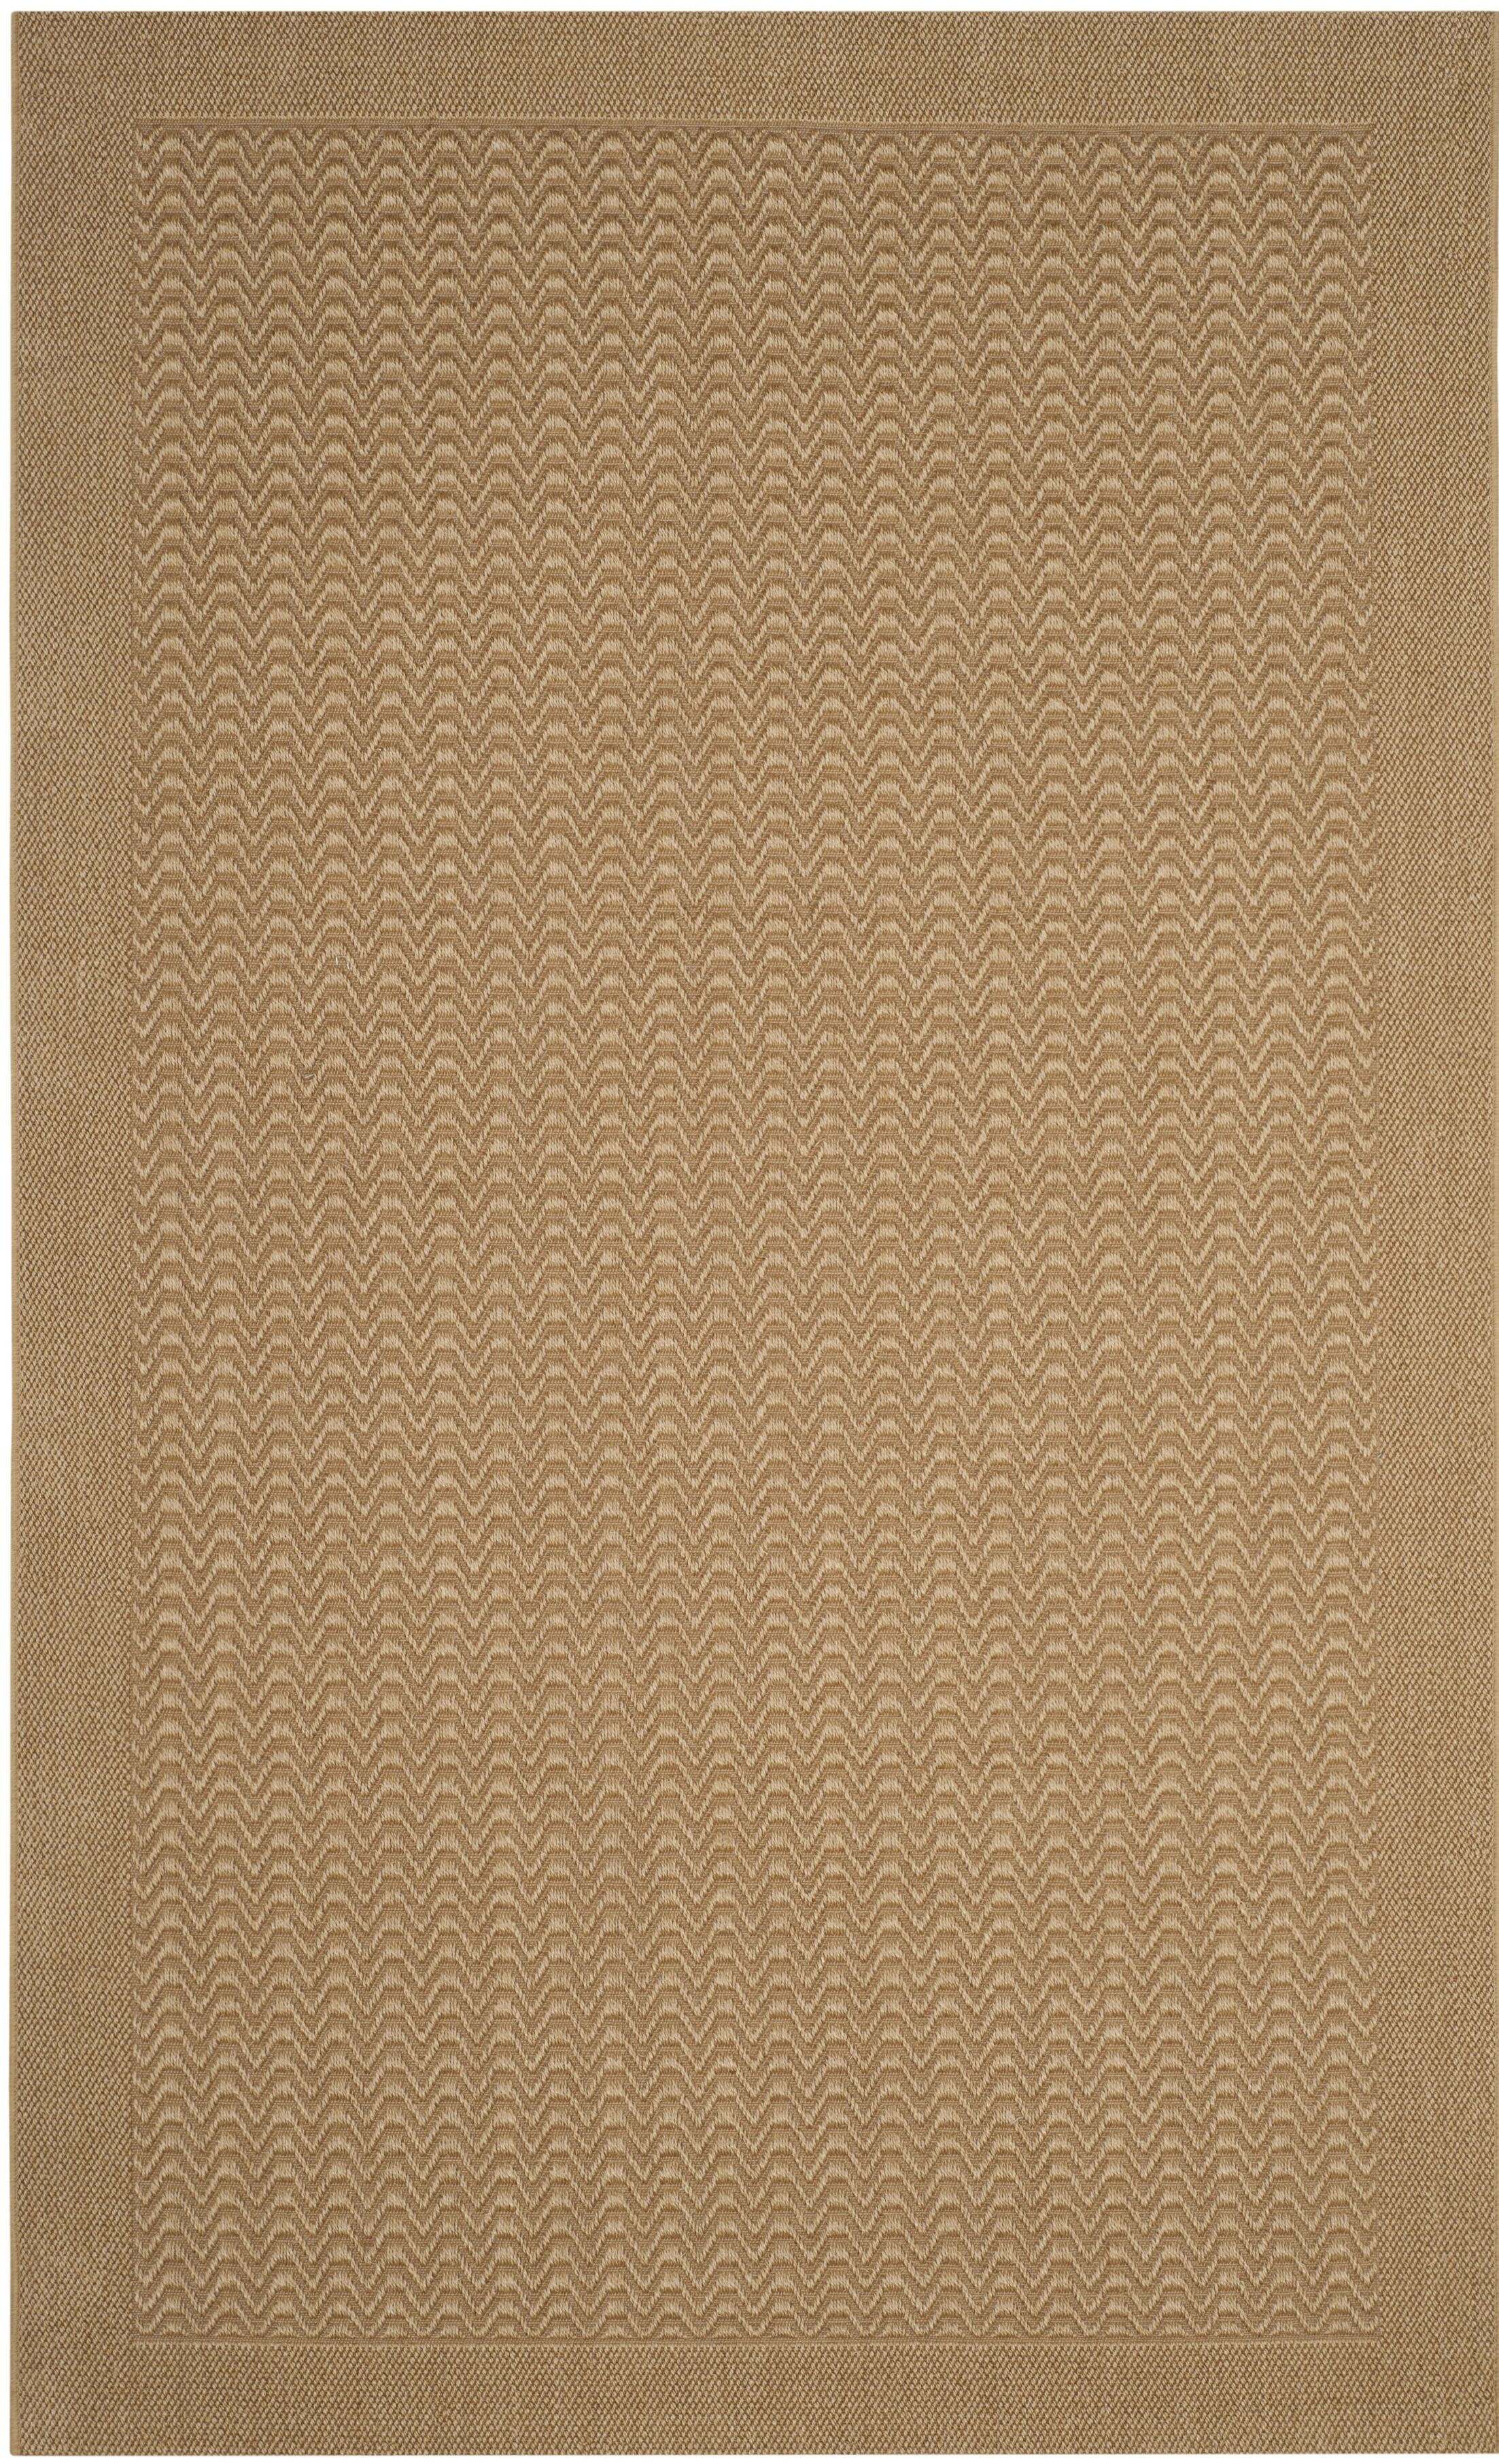 Ximena Brown Area Rug Rug Size: Runner 2' x 8'